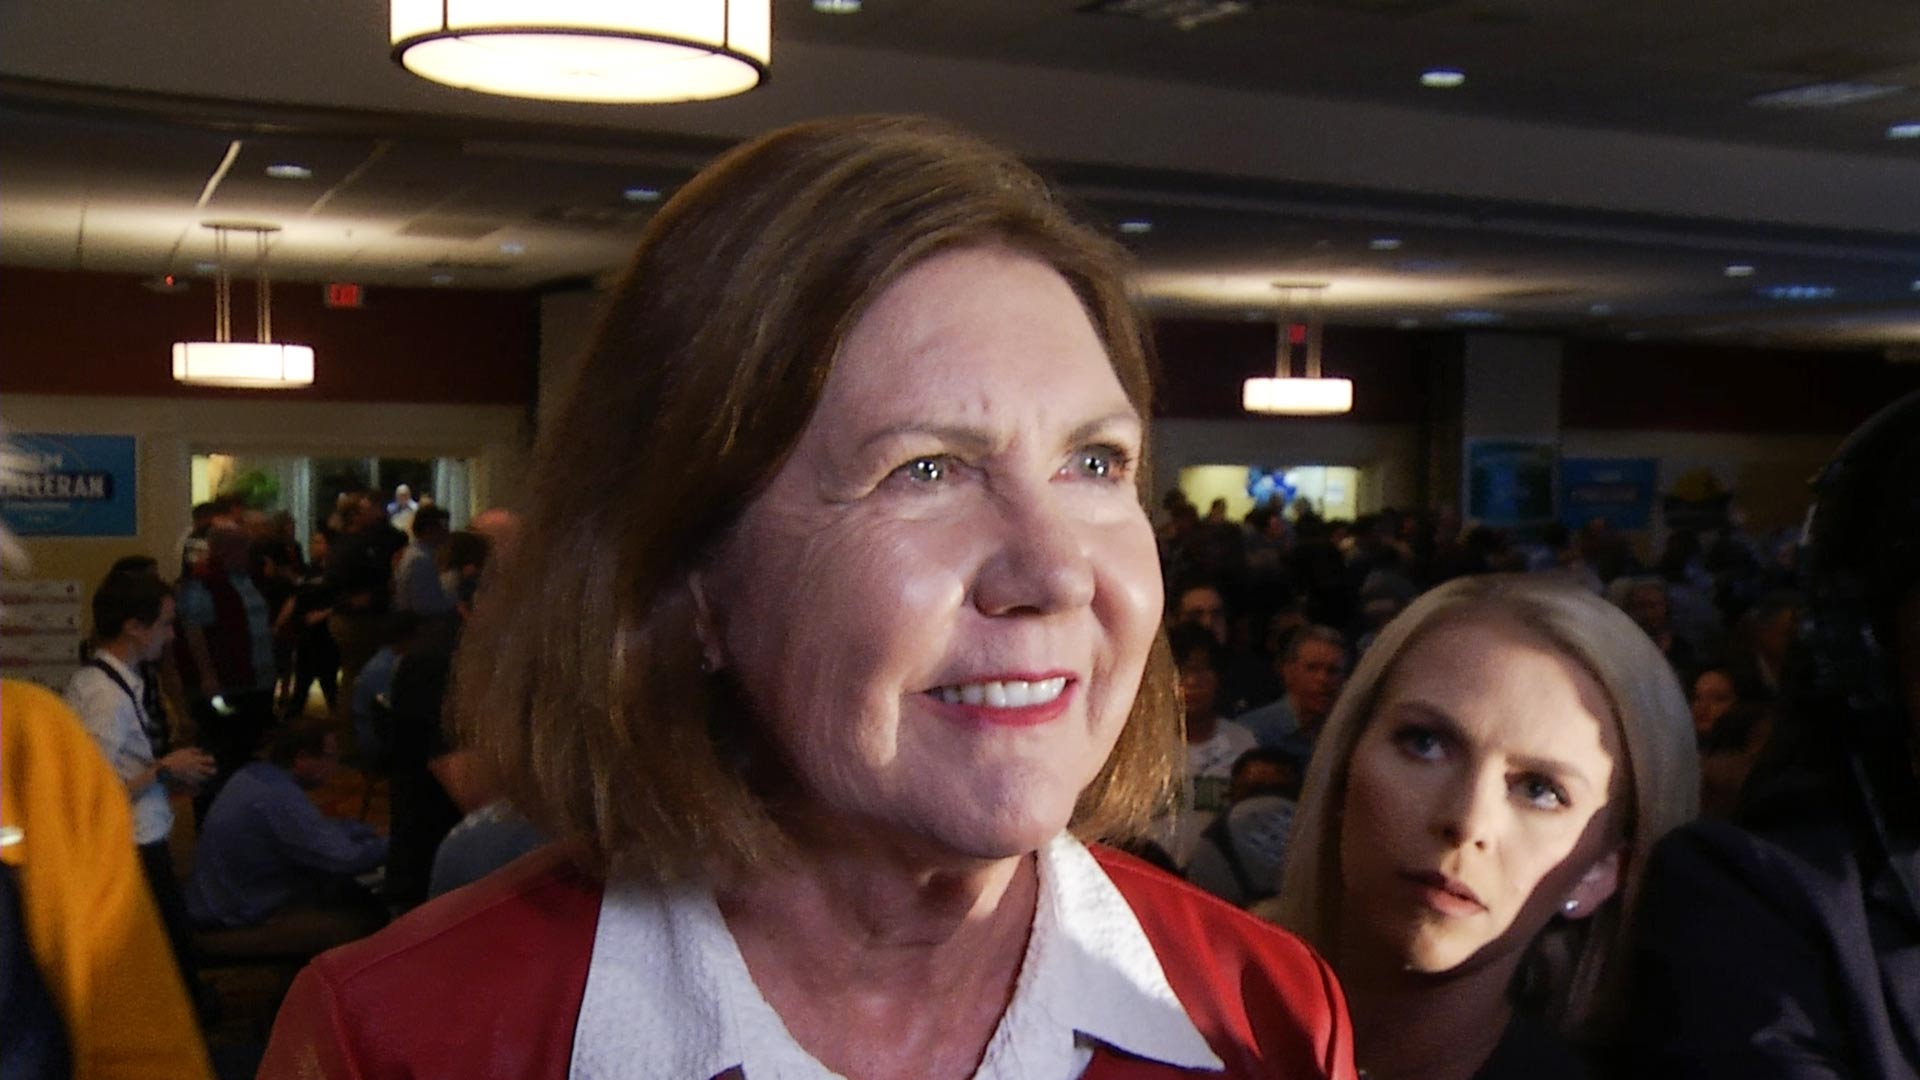 U.S. Rep. Ann Kirkpatrick speaks to the media, Election Day, Nov. 6, 2018.